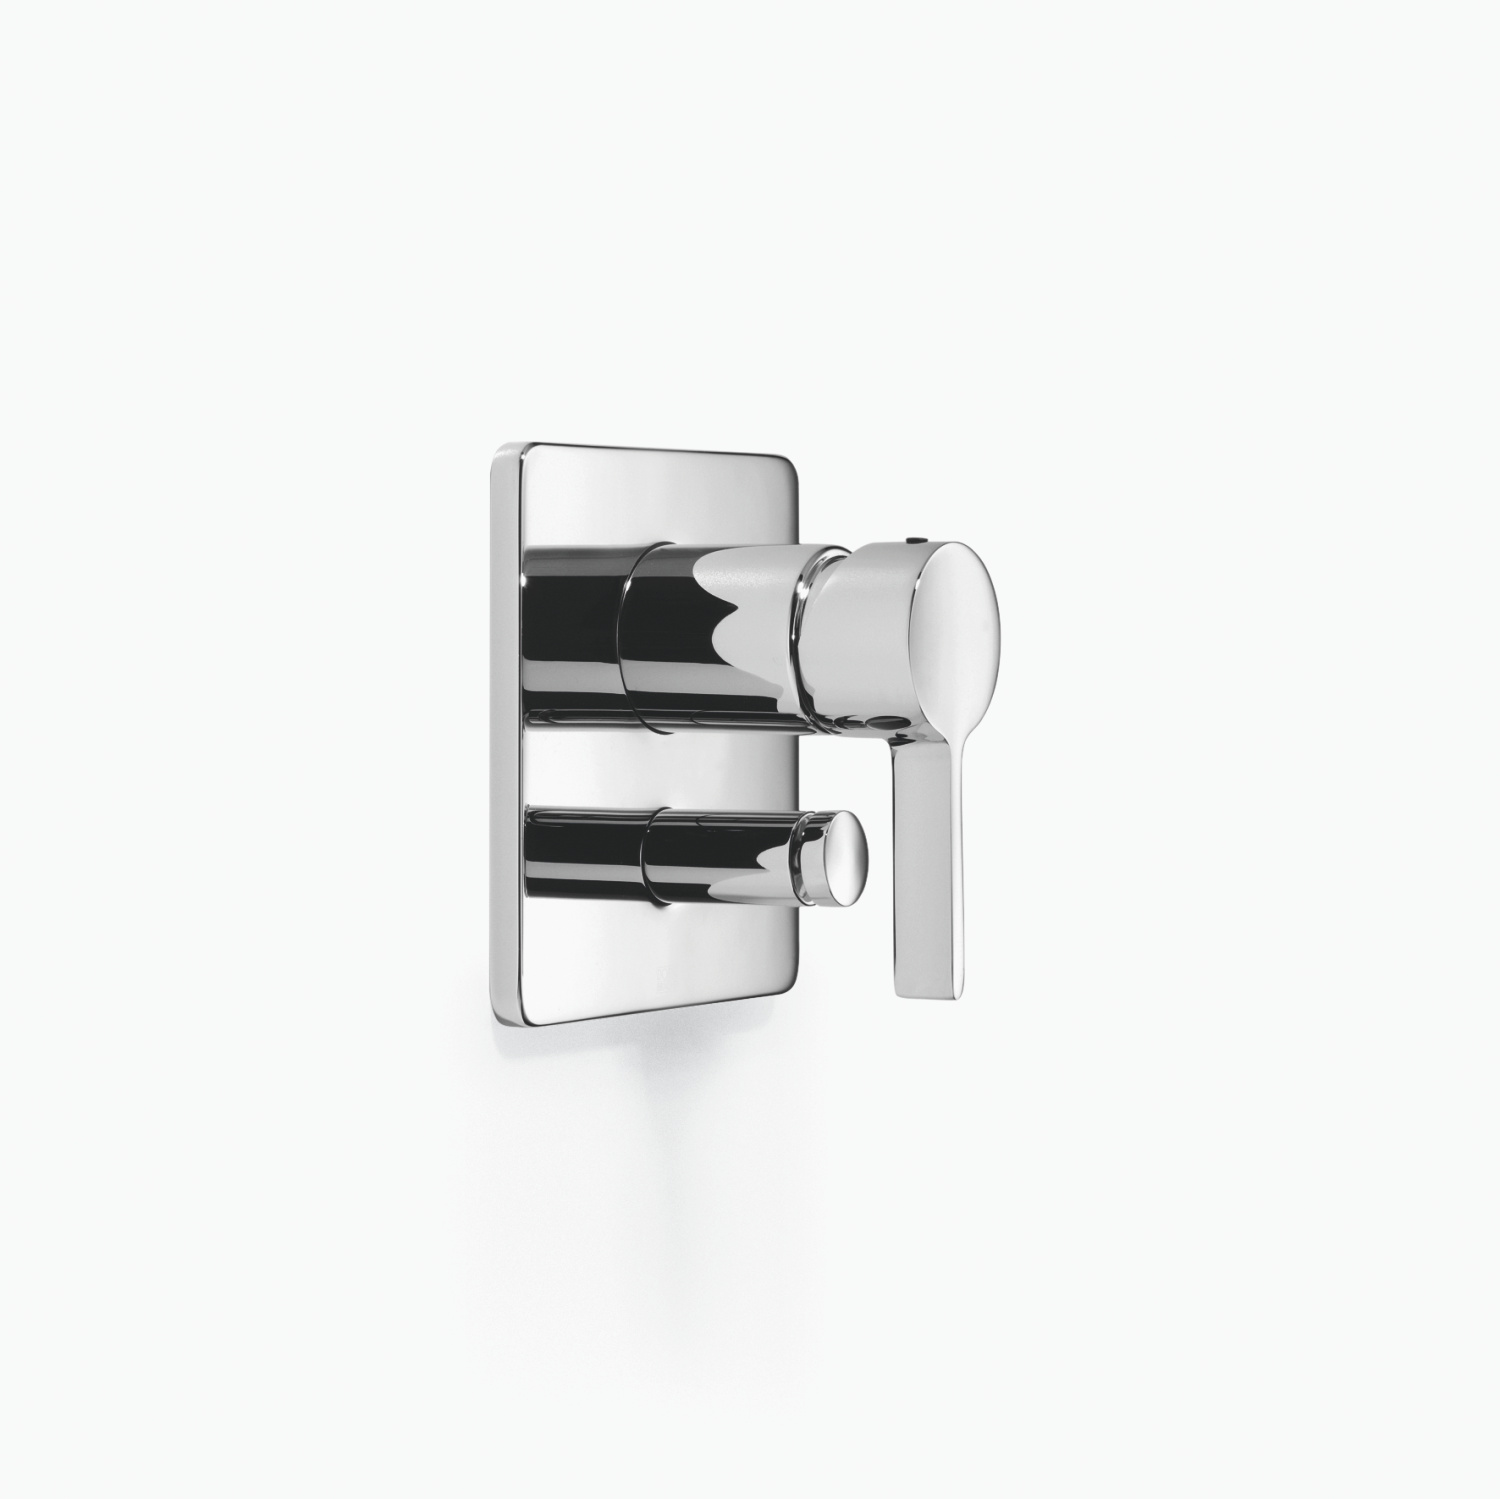 xSTREAM Concealed single-lever mixer with diverter - platinum matt